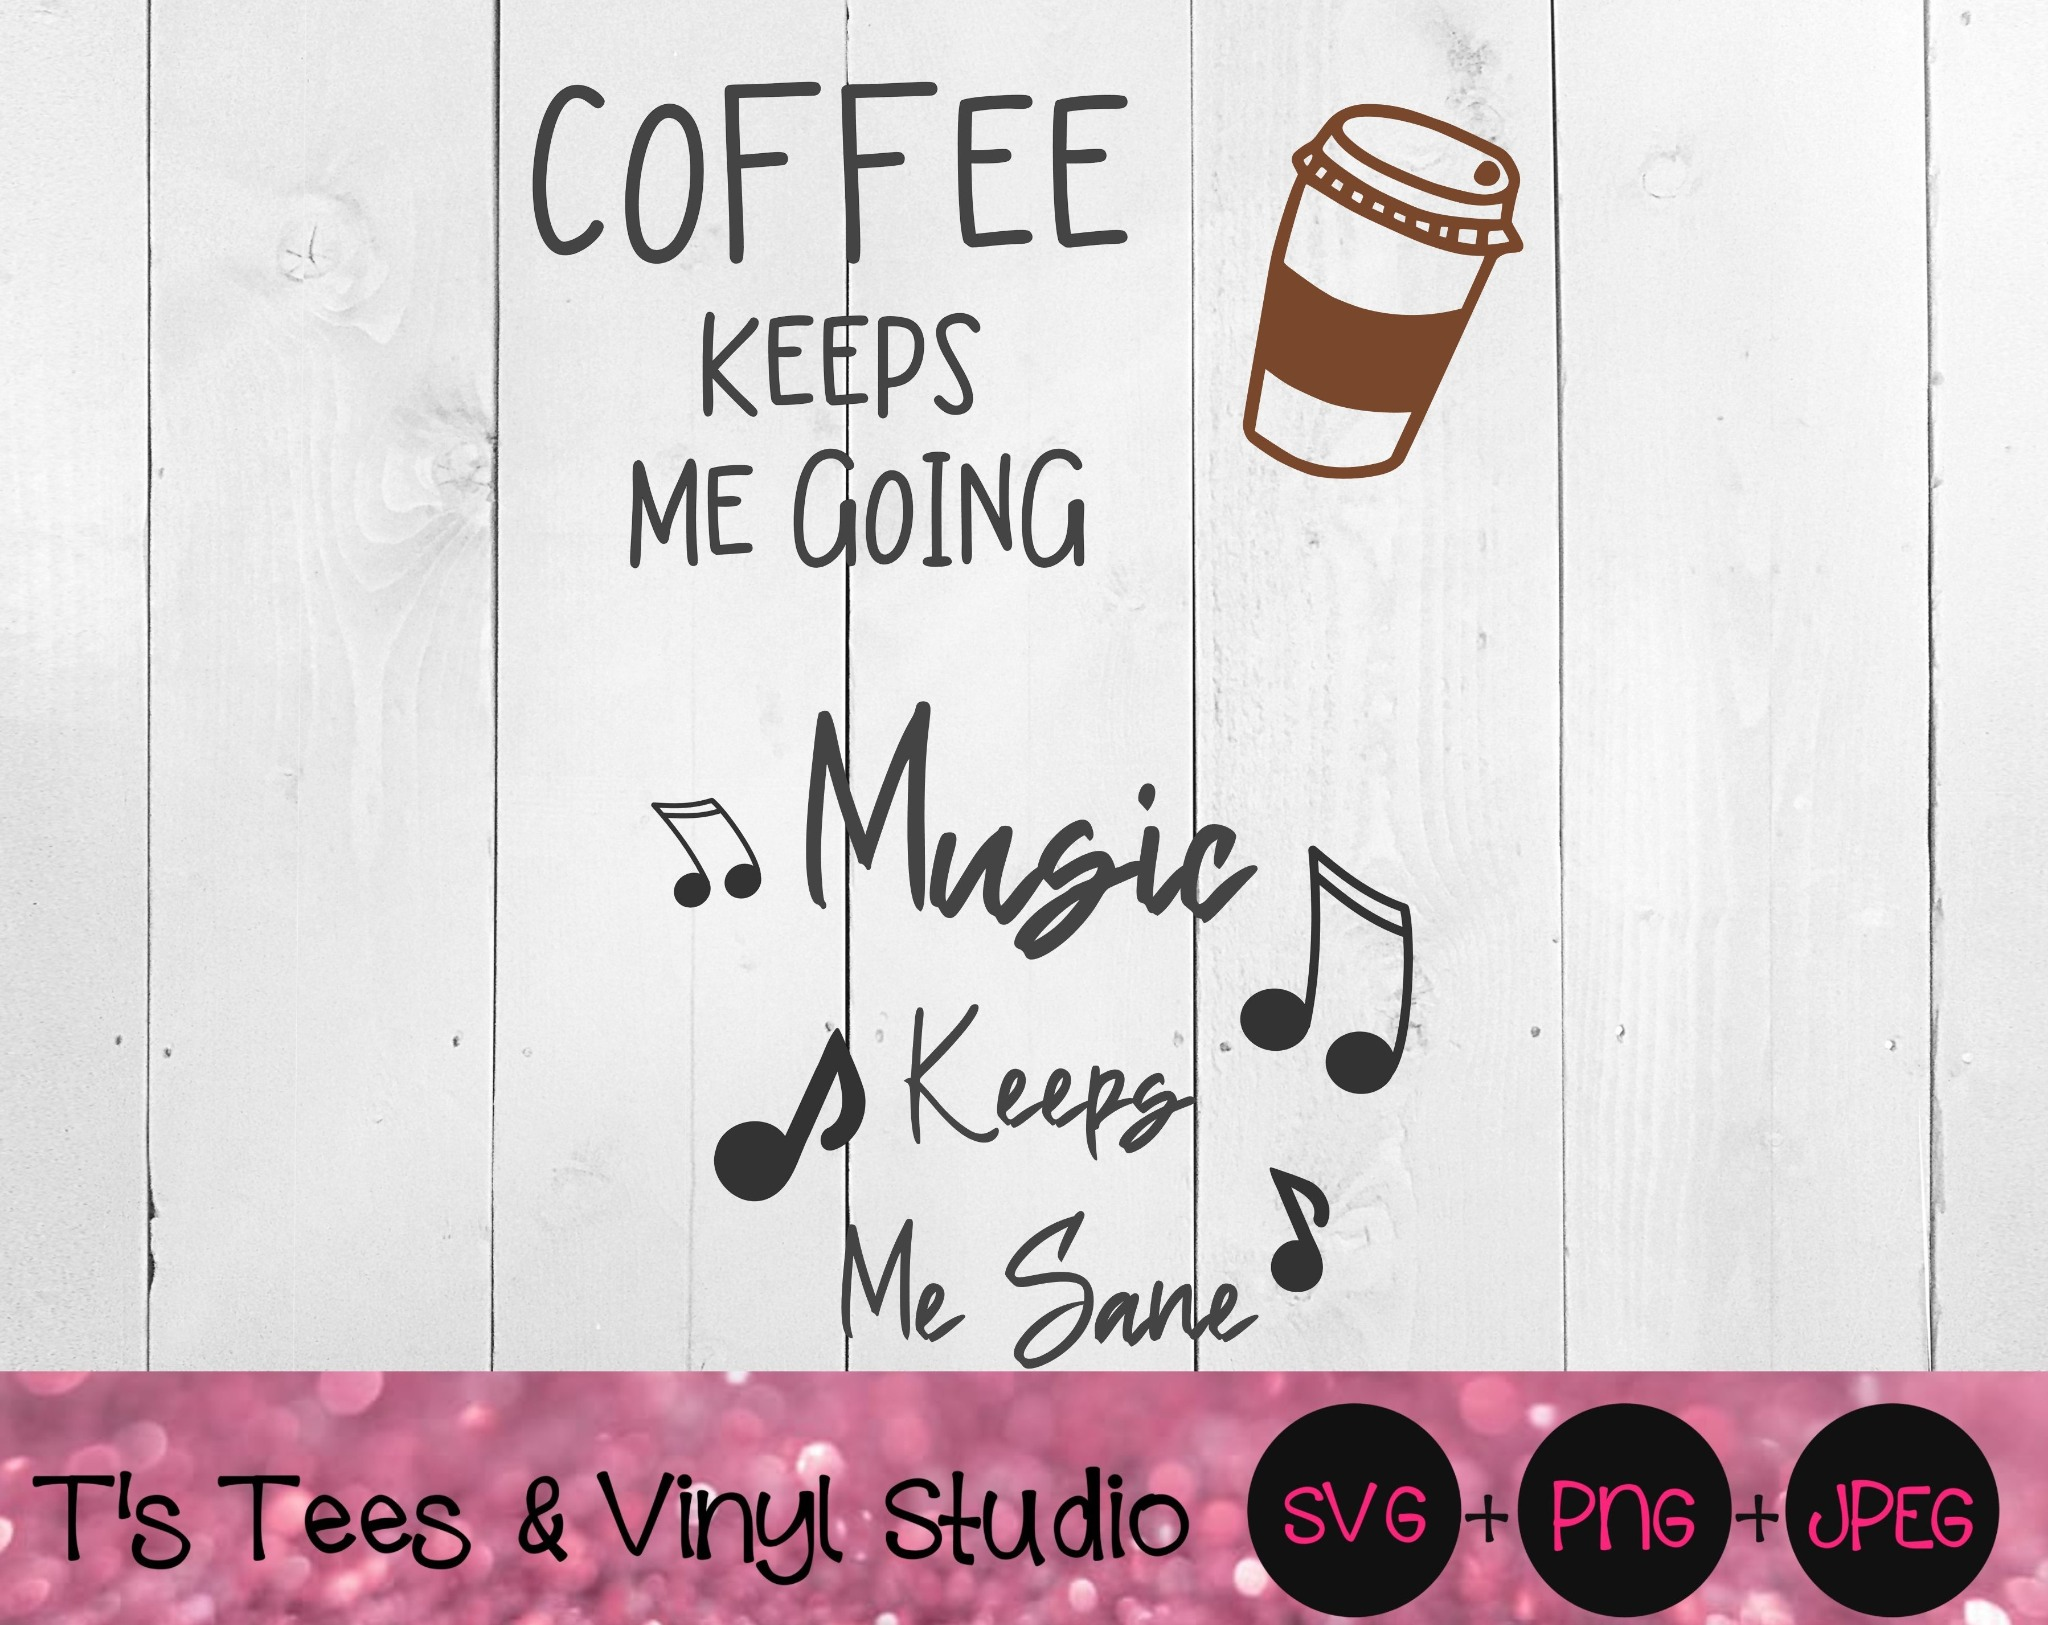 Coffee Svg, Music Svg, Coffee Keeps Me Going SVG, Music Keeps Me Sane SVG, Notes Svg, Love Coffee Mu